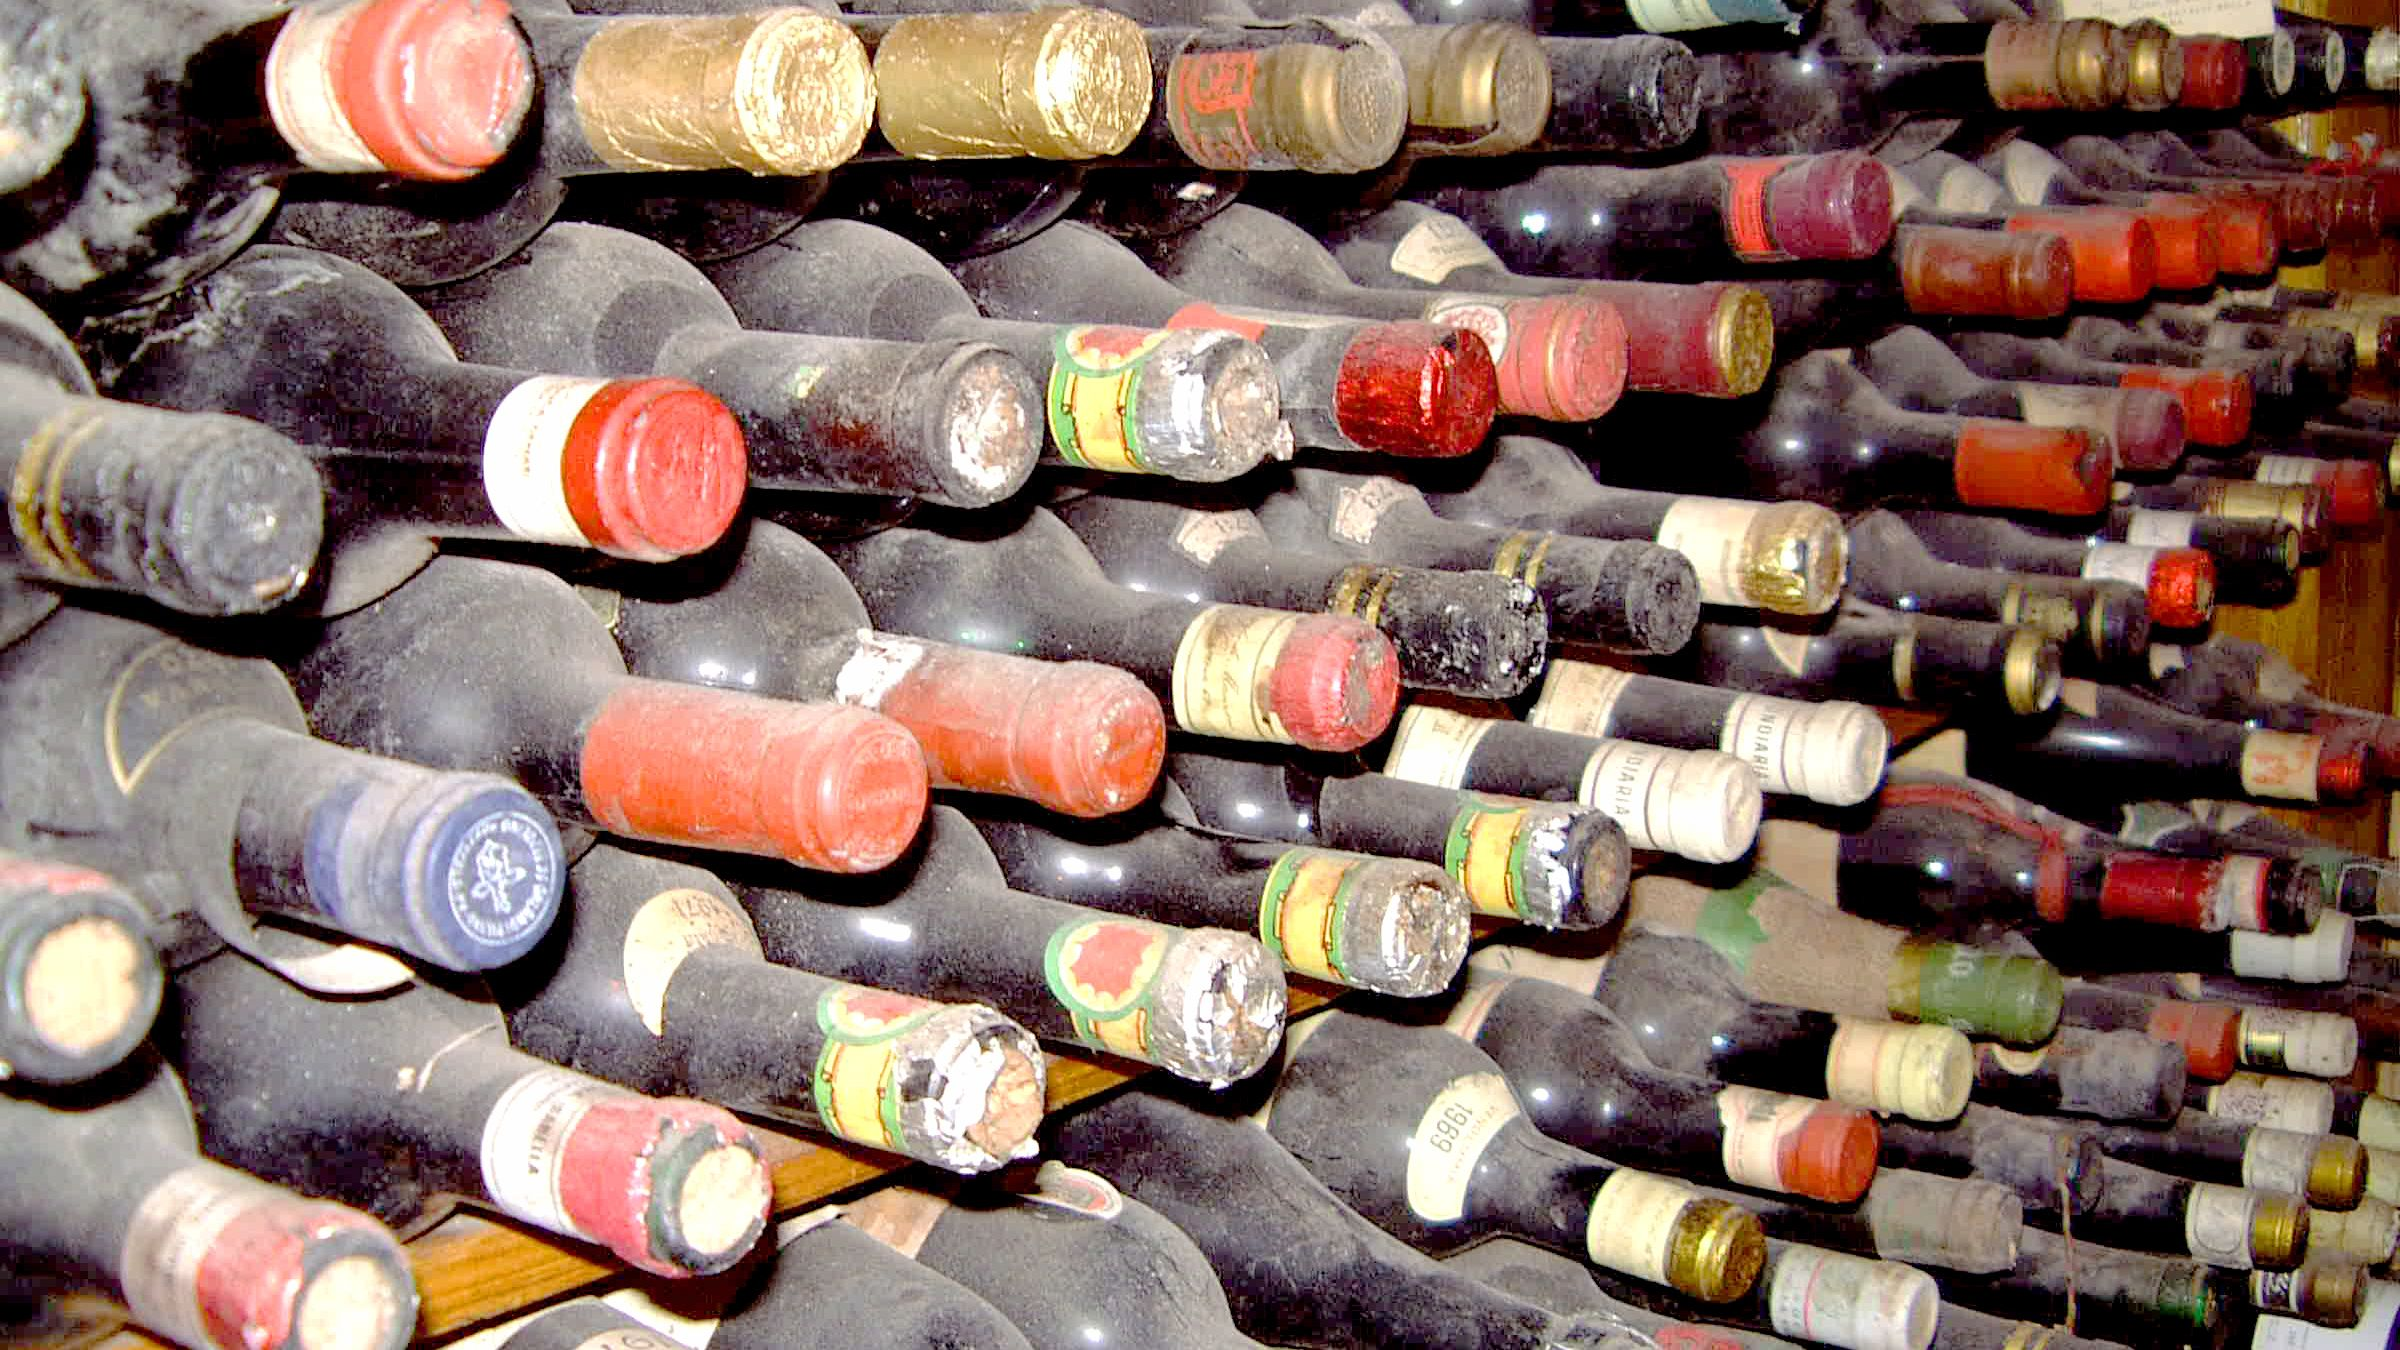 Wine collection at Chef's table in Nassau